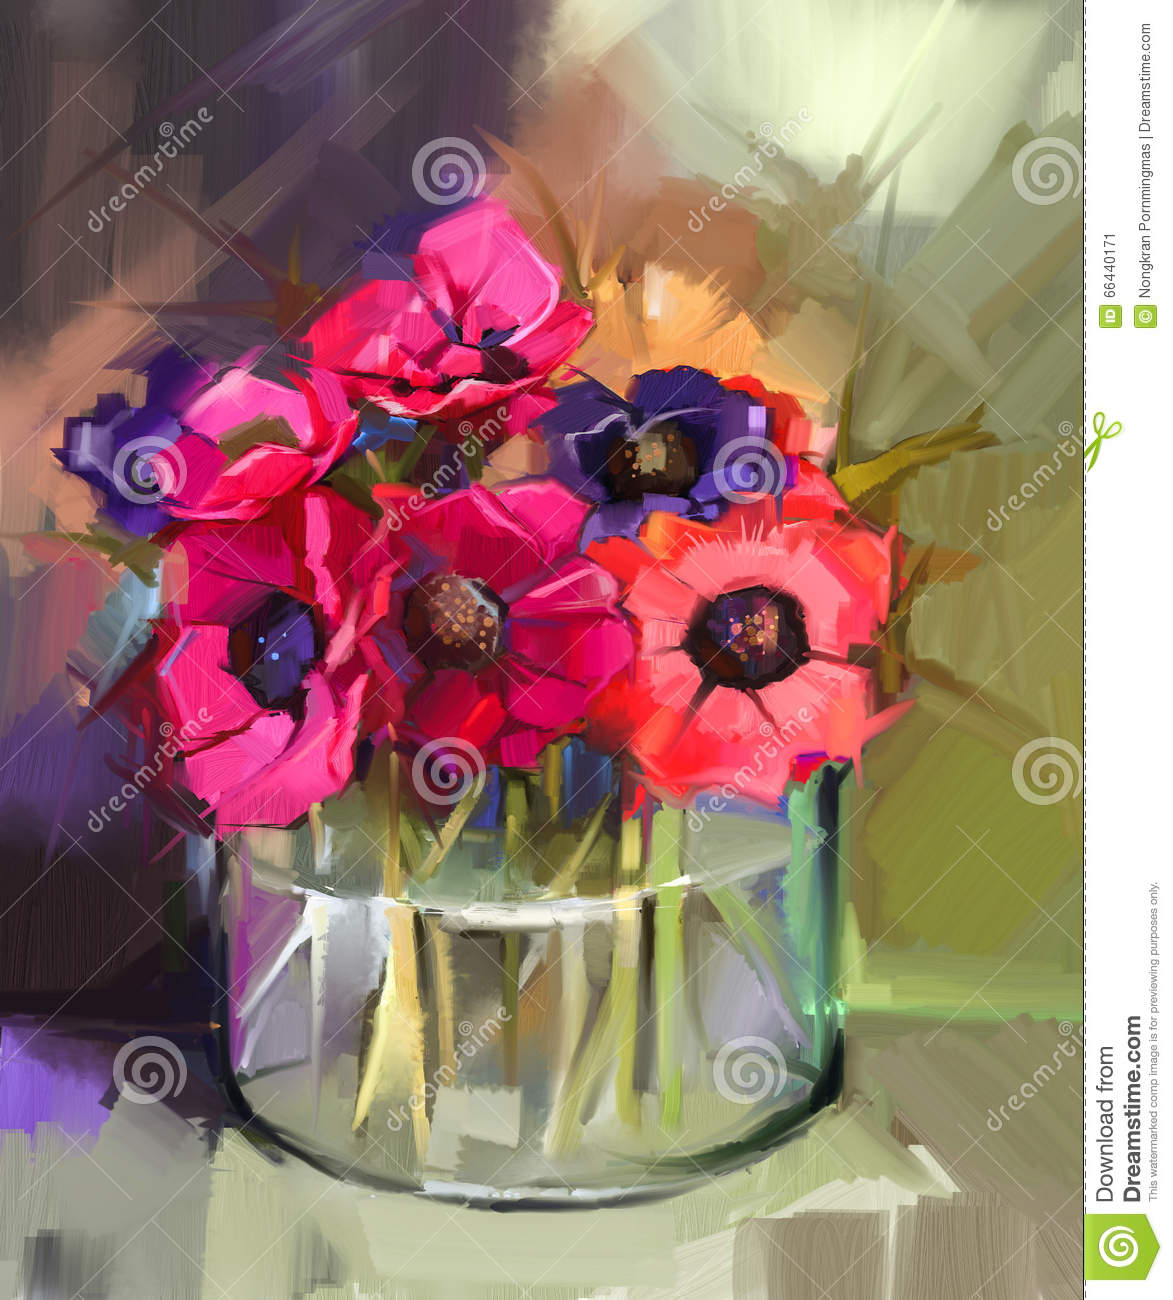 Still Life A Bouquet Of Flowers Oil Painting Red Anemones Flower Stock Illustration Image